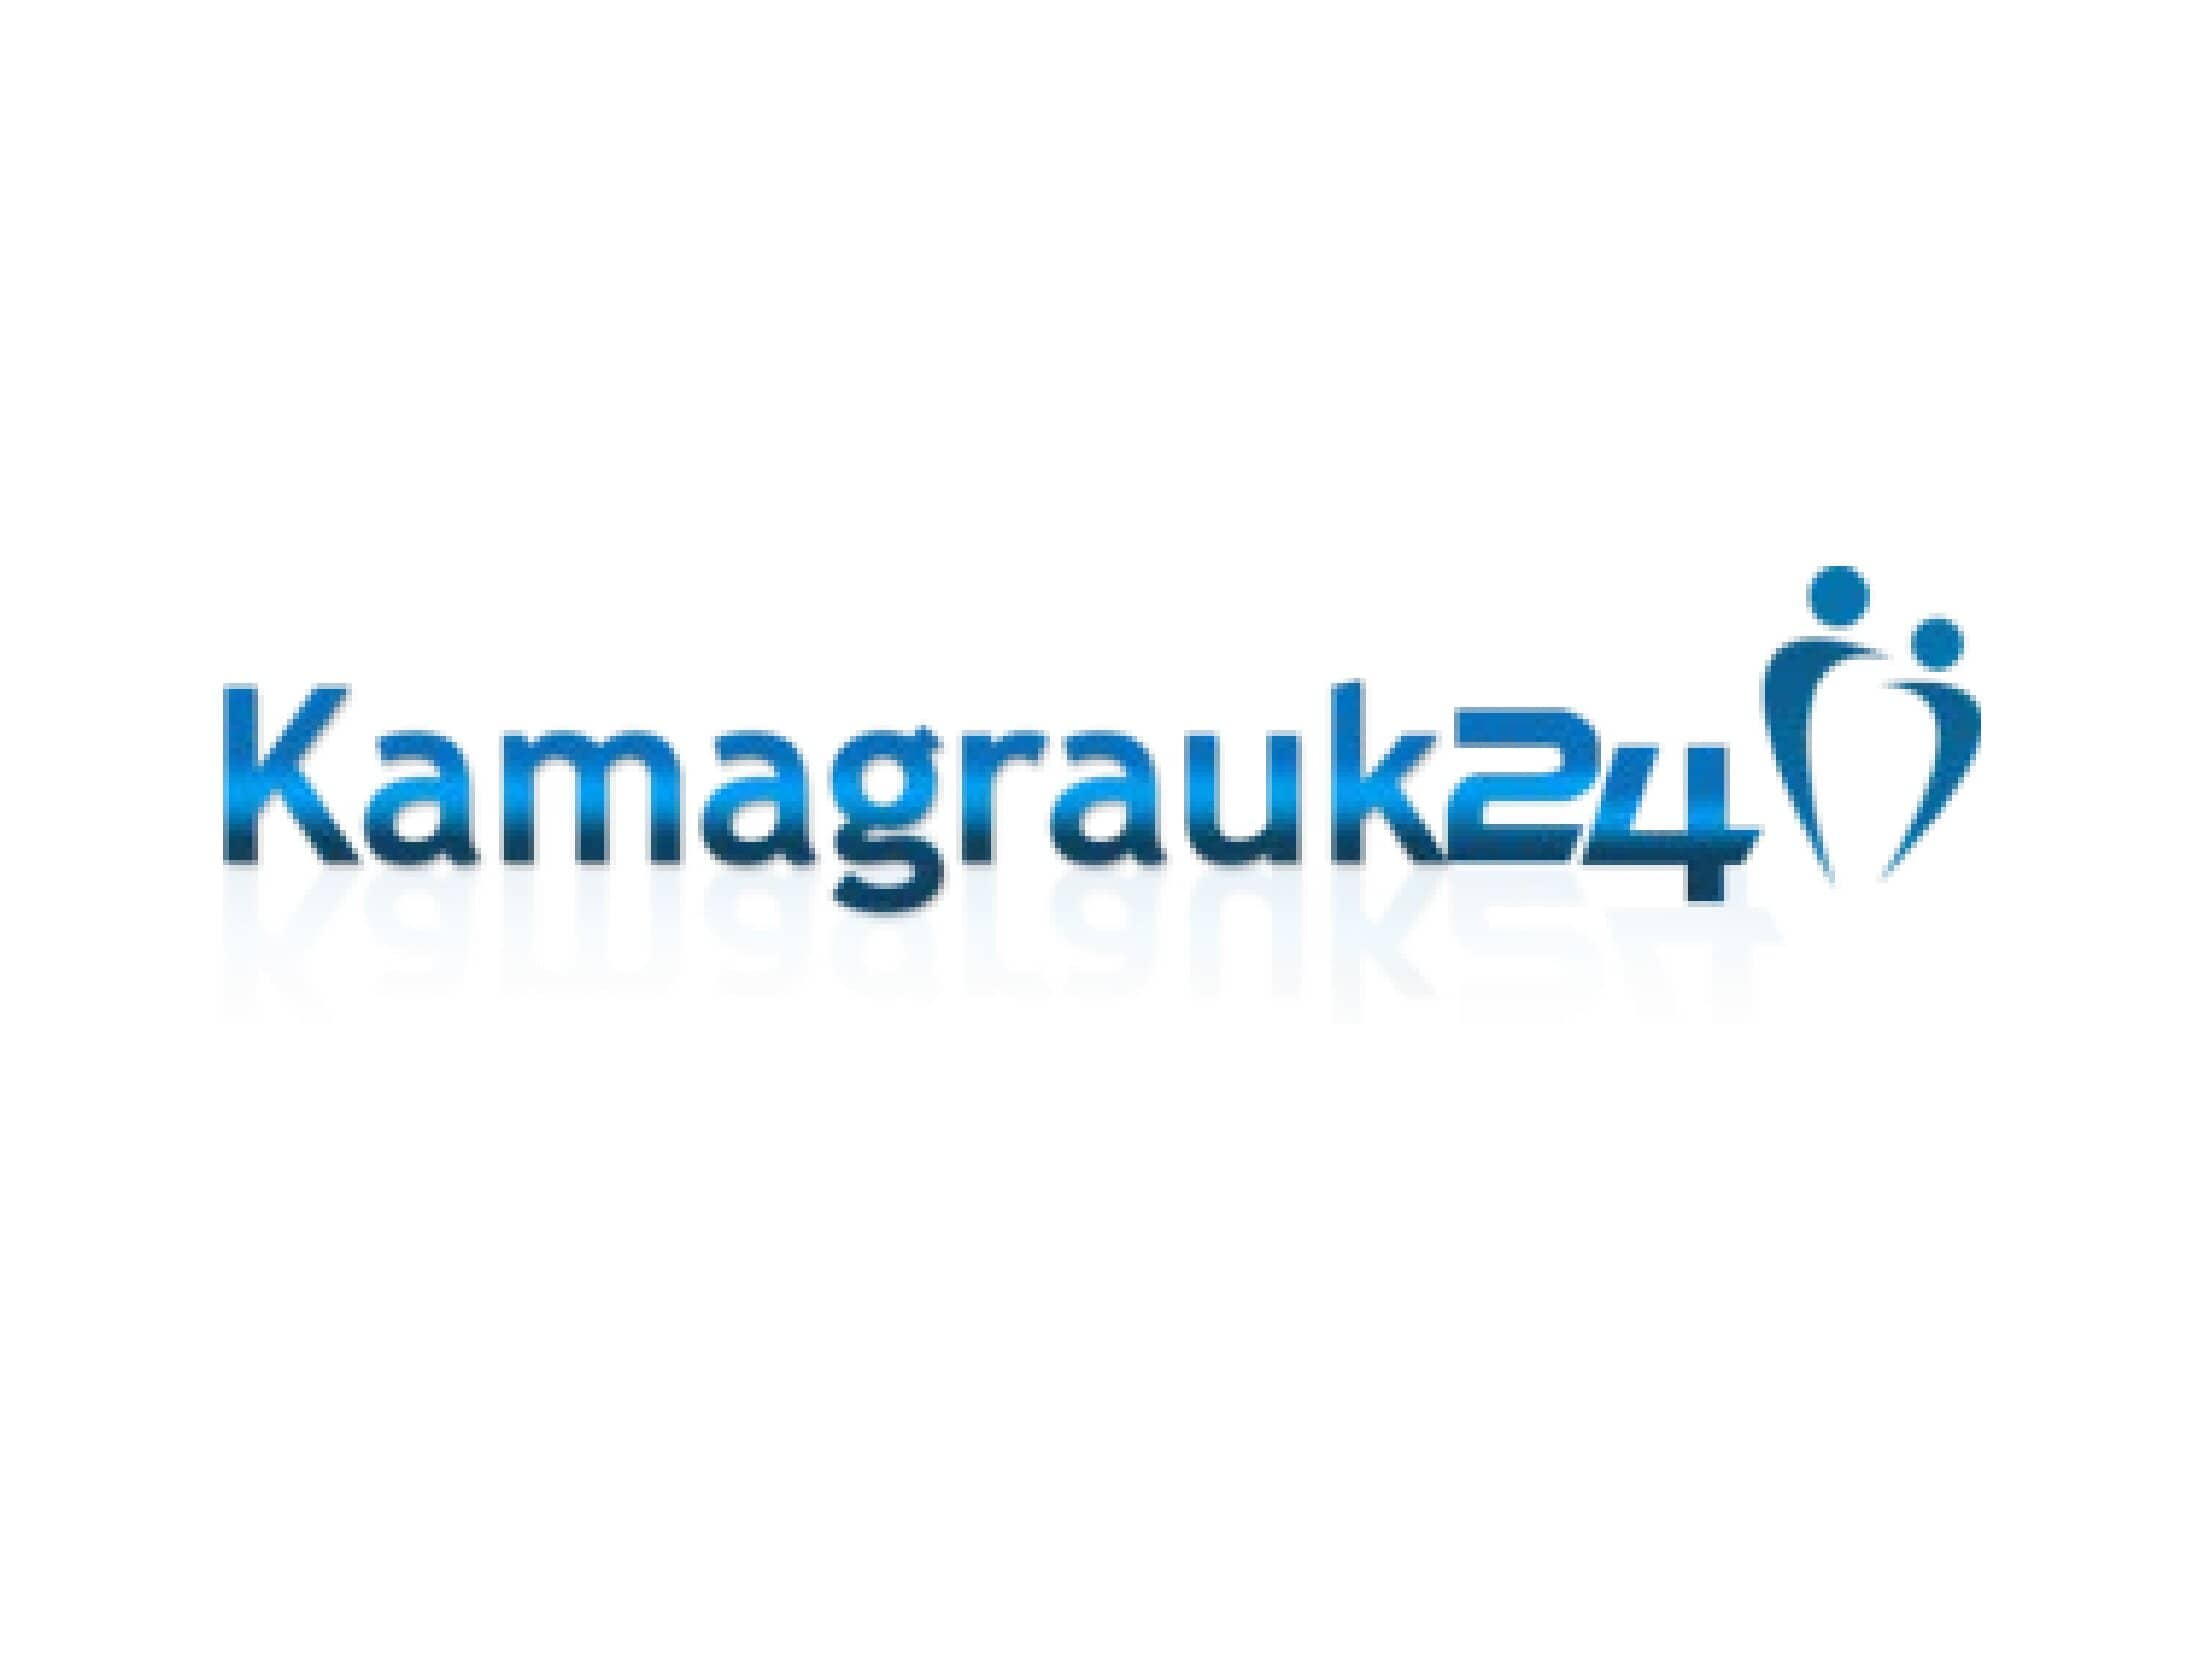 Kamagra Uk24 Logo  IMAGES, GIF, ANIMATED GIF, WALLPAPER, STICKER FOR WHATSAPP & FACEBOOK